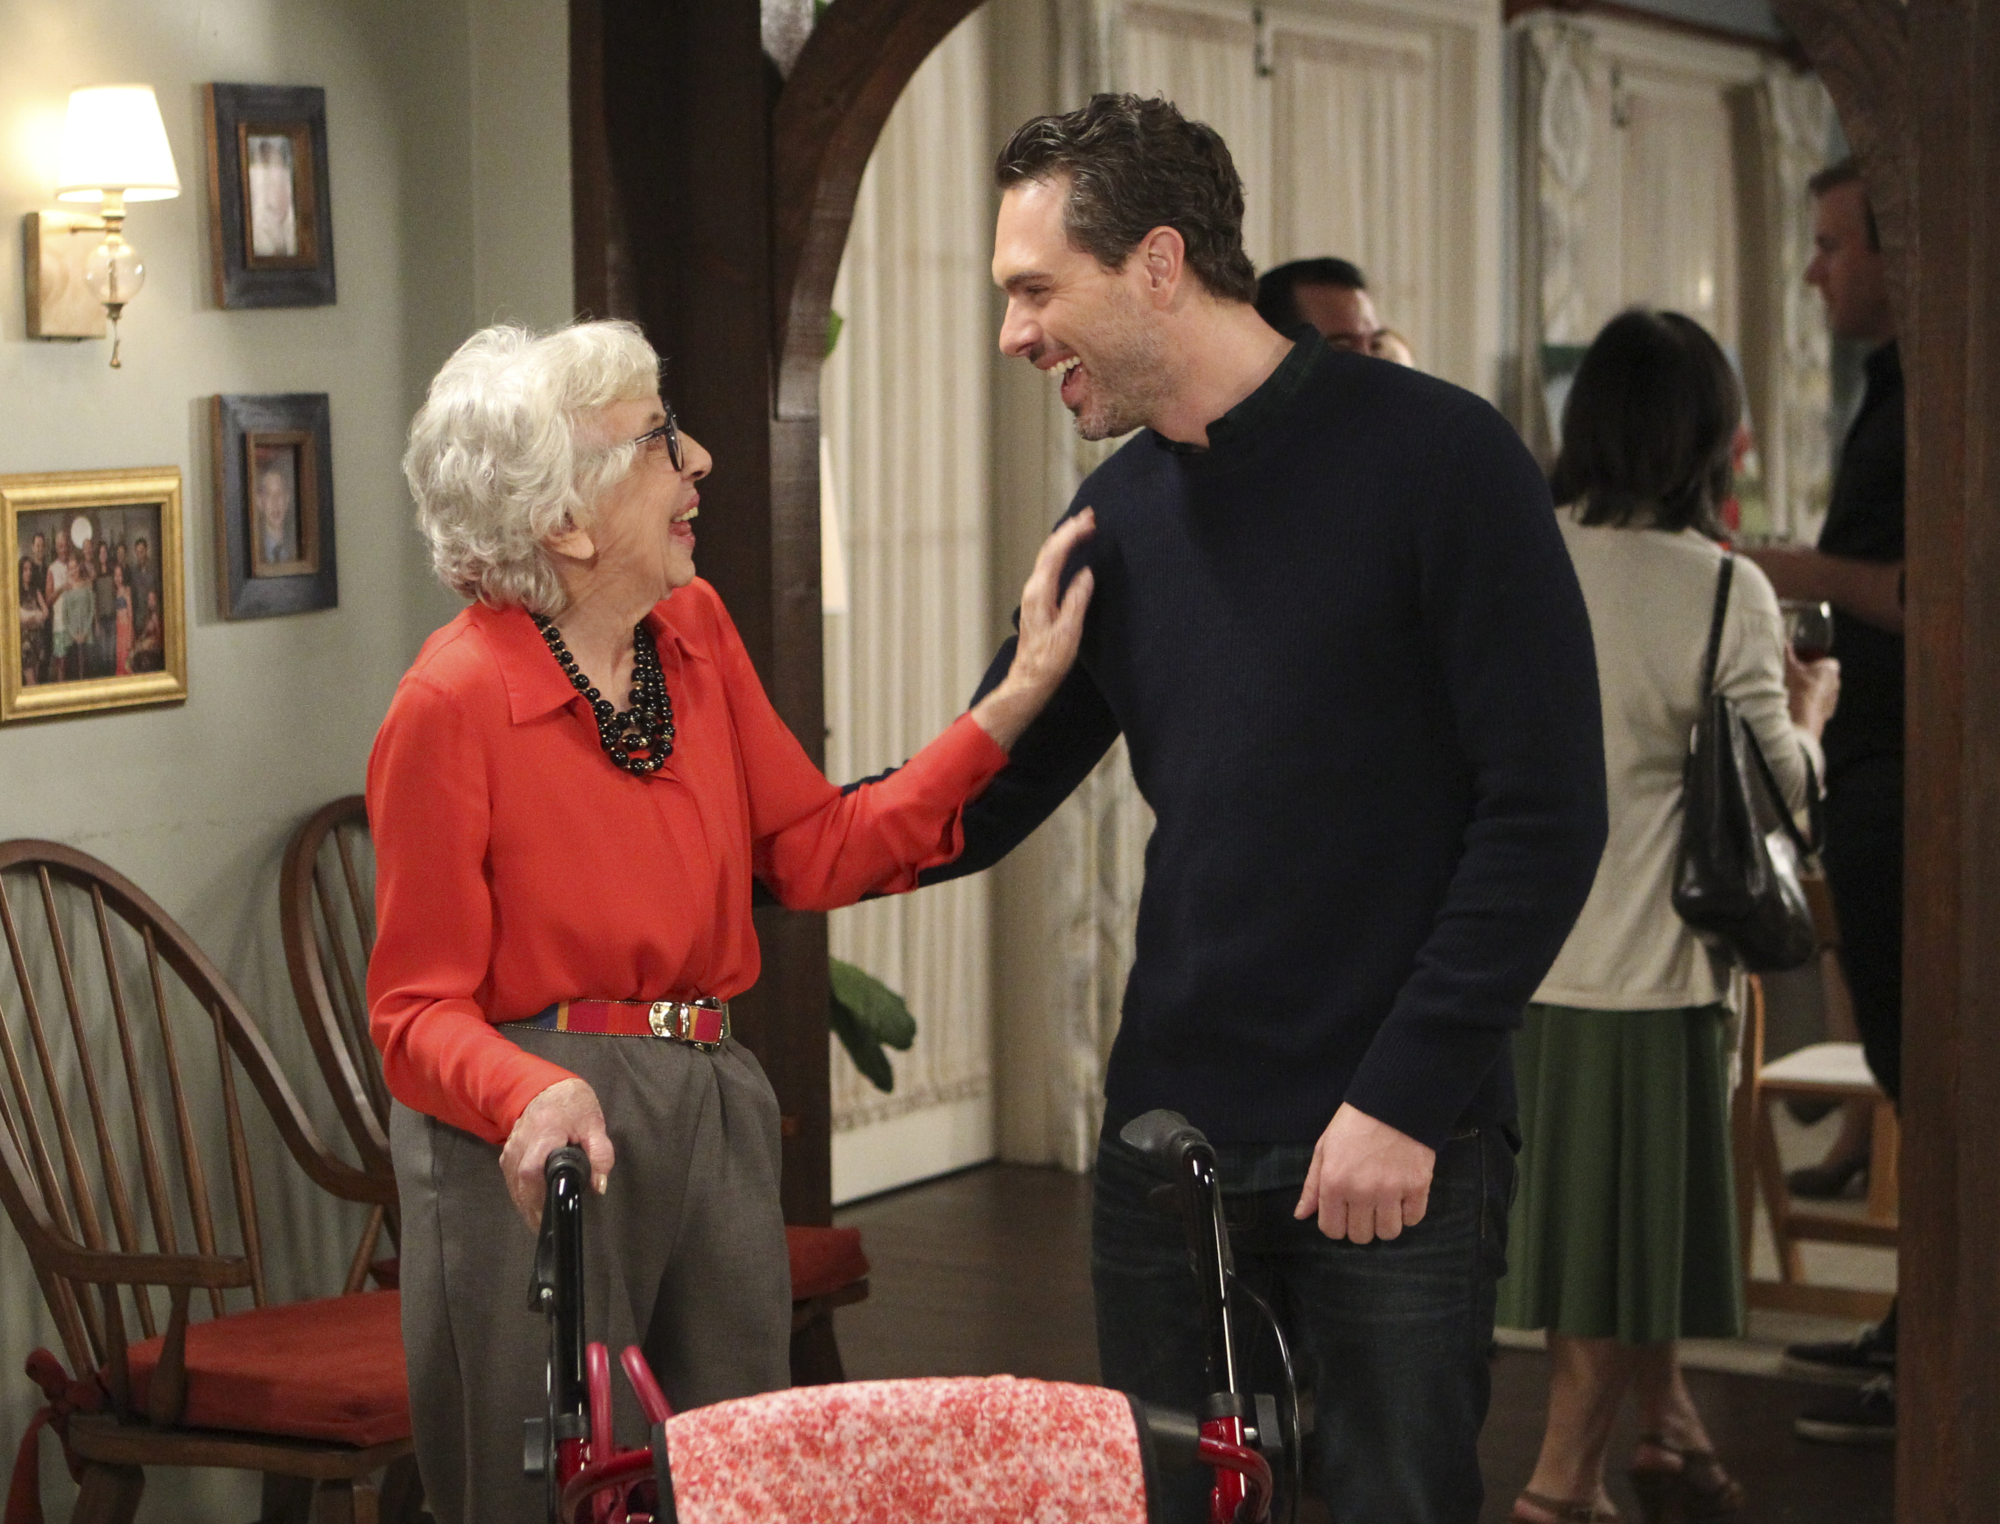 Matt shares a laugh with his grandmother at one of the Short's famous family get-togethers.